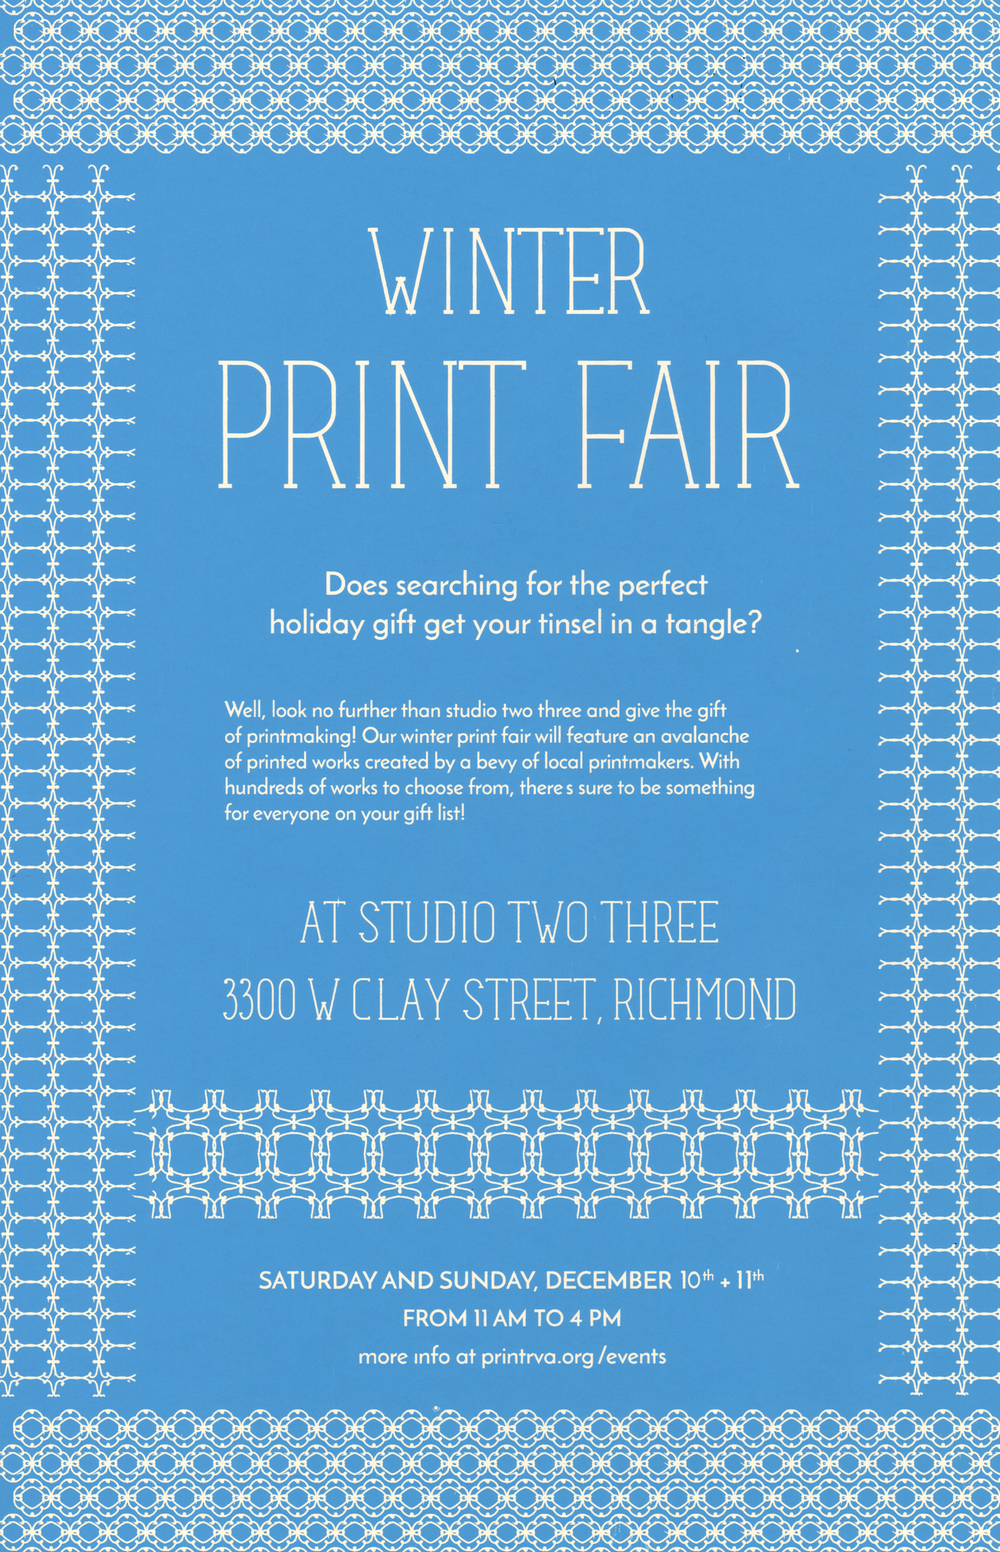 Artists at Studio Two Three are busily printing and making all sorts of wonderful art and gifts for you to purchase on Dec. 10 and 11 at our annual Winter Print Fair. We're very excited about this event which has become a favorite of holiday shoppers and collectors, and we really hope you can join us! Additionally, Natalie Kohlhepp and Drew Storcks will be taking 8x10 Portraits using a Graflex camera! Sign up HERE to secure a spot during their Saturday shooting hours.  Winter Print Fair hours are Saturday, Dec. 10 and Sunday, Dec. 11, 11am-4pm. As you may know, we are located at 3300 W. Clay St., 23230, in Scott's Addition. Winter Print Fair artists include: Amanda Austin BRK Re-Design Frames Laurie Carnohan Ann Chenoweth Clown Kisses Press Elizabeth Cogar Drift Riot Jewelry Madison Fairburn Garrett Fees Mary Fleming Lucy Gillis Guard N Flags Sarah Hand Ashley Hawkins Brooke Inman Rosemary Jesionowski & Jake Urbanski Aimee Joyaux Melanie Kluender Aijung Kim Cody Landrum Amelia Blair Langford Lightbox Print Co. Matt Lively Cam McMullen Navy Hill Co. Obscuro Jewelry Travis Robertson RVA Coffee Stain Alyssa Salomon Cosima Storz Studio Two Three Interns Studio Two Three Photographers Daniel Torraca VCU Print Club Kim Winters Katie Wood In addition, on Saturday, Dec. 10, 11am-4pm, photographers Natalie Kohlhepp and Drew Storcks will be taking portraits during the Winter Print Fair using Cindy Neuschwander's beautiful studio camera, donated courtesy of Jay Barrows. You'll get an 8x10 direct positive print for $20. Sign up for your close up now!